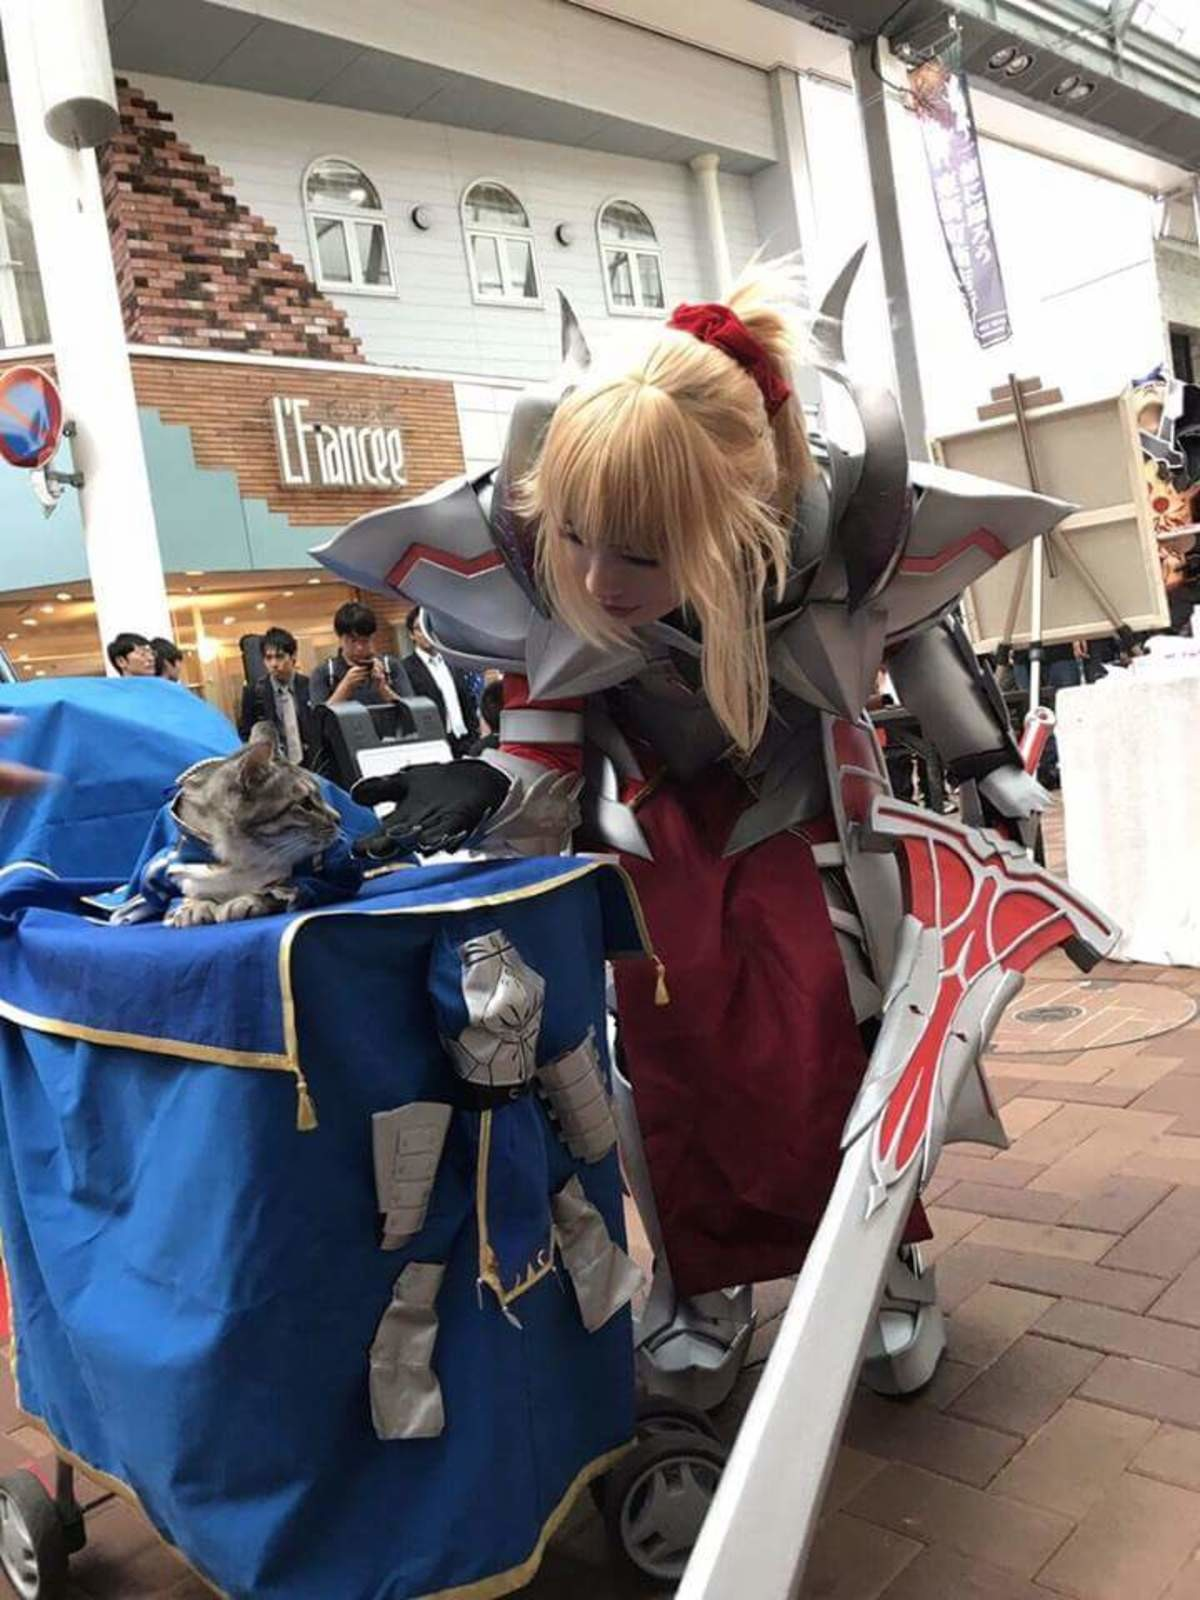 Saber Lion Irl. join list: Lewds4DHeart (1585 subs)Mention History join list:. Smug as